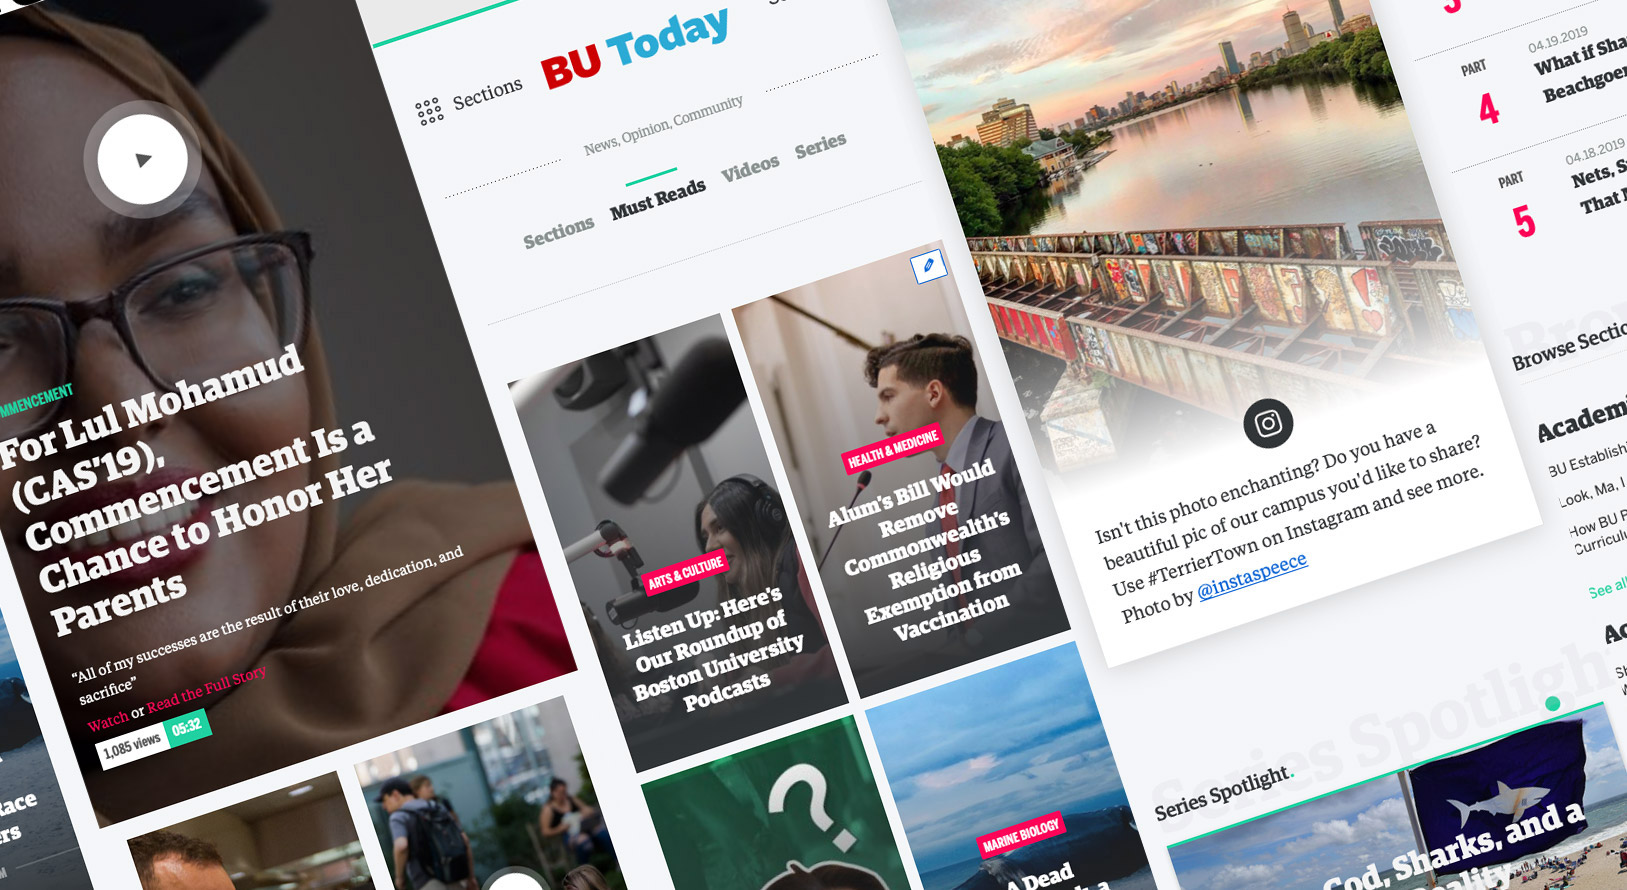 Composite image of screenshots from the 2019 redesign of BU Today